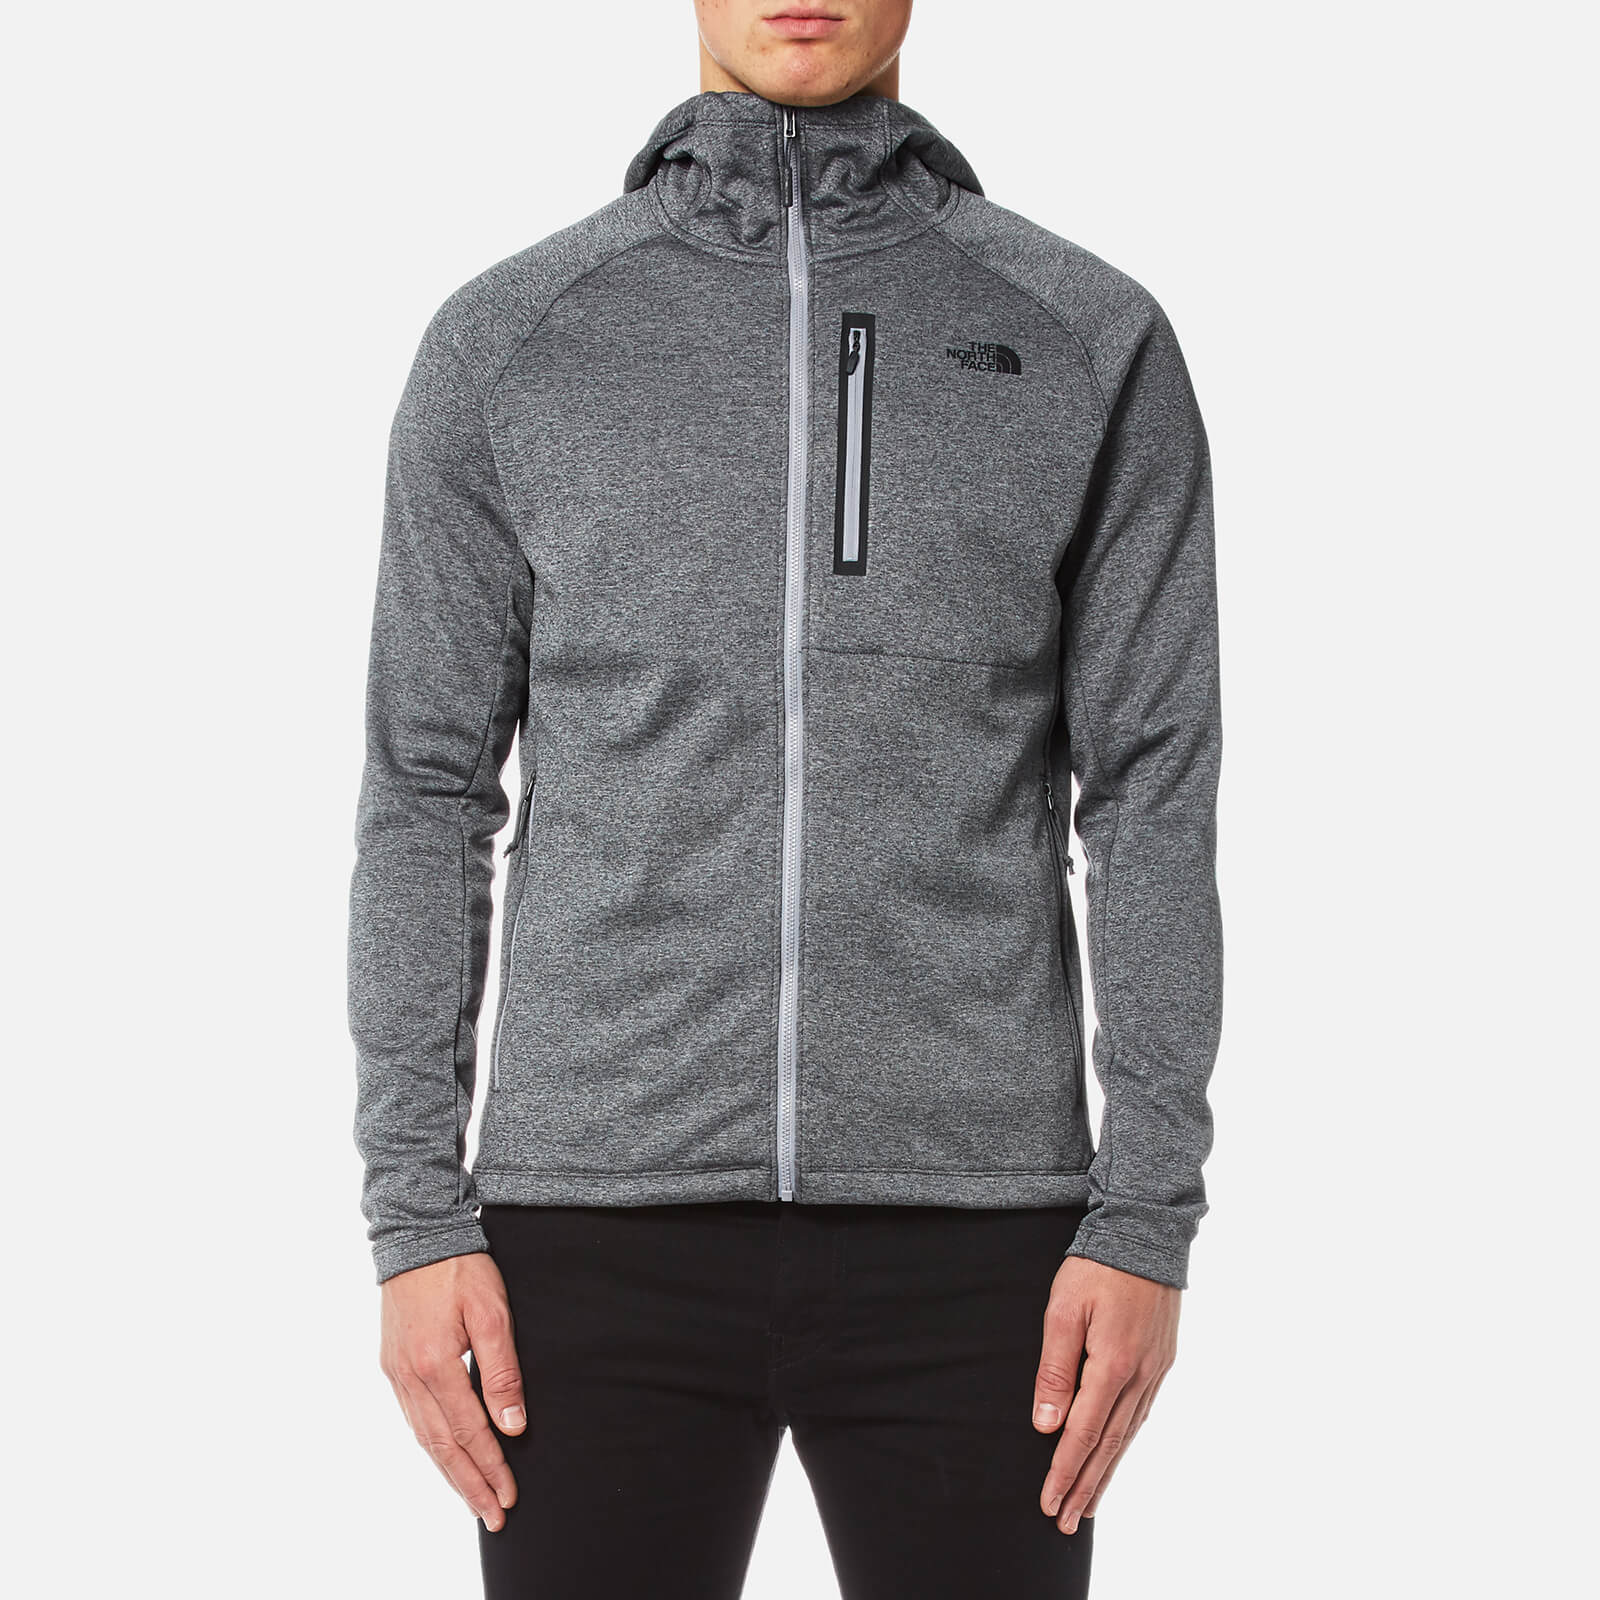 911916dde7 The North Face Men's Canyonlands Hoody - TNF Medium Grey Heather Mens  Clothing | TheHut.com